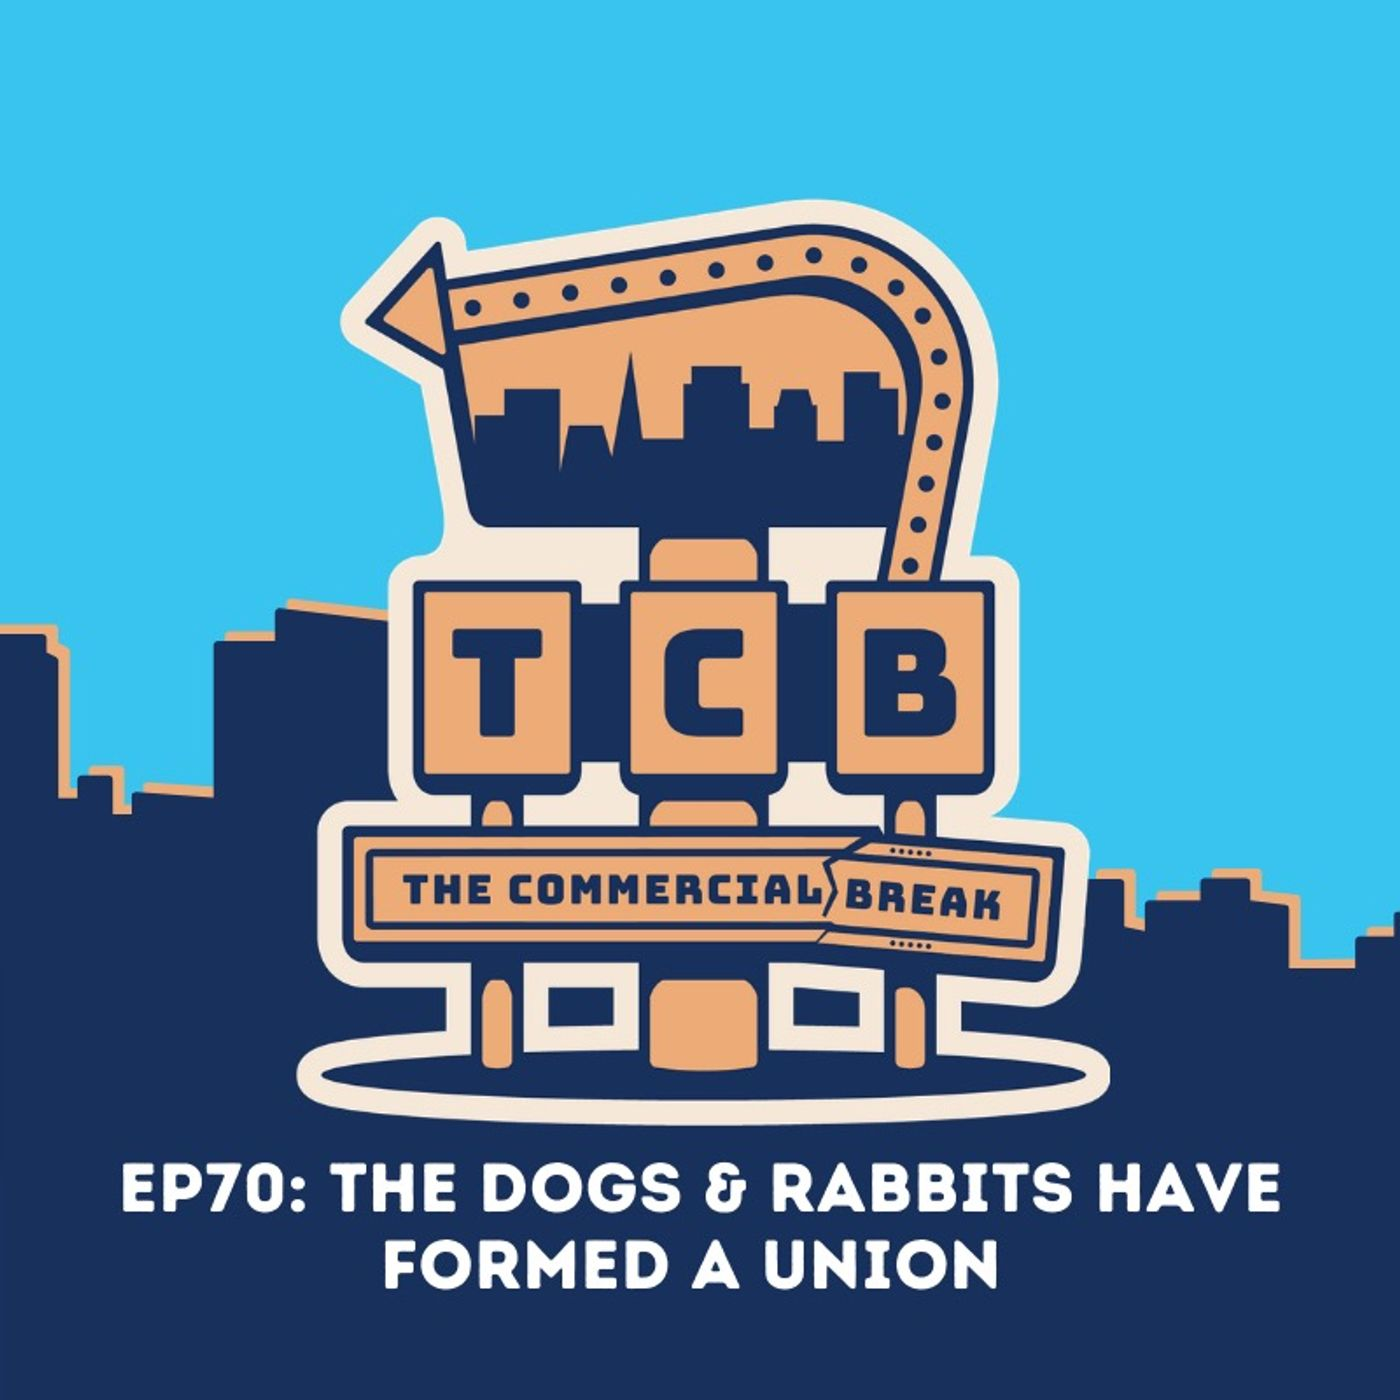 EP70: The Dogs & Rabbits Have Formed A Union!